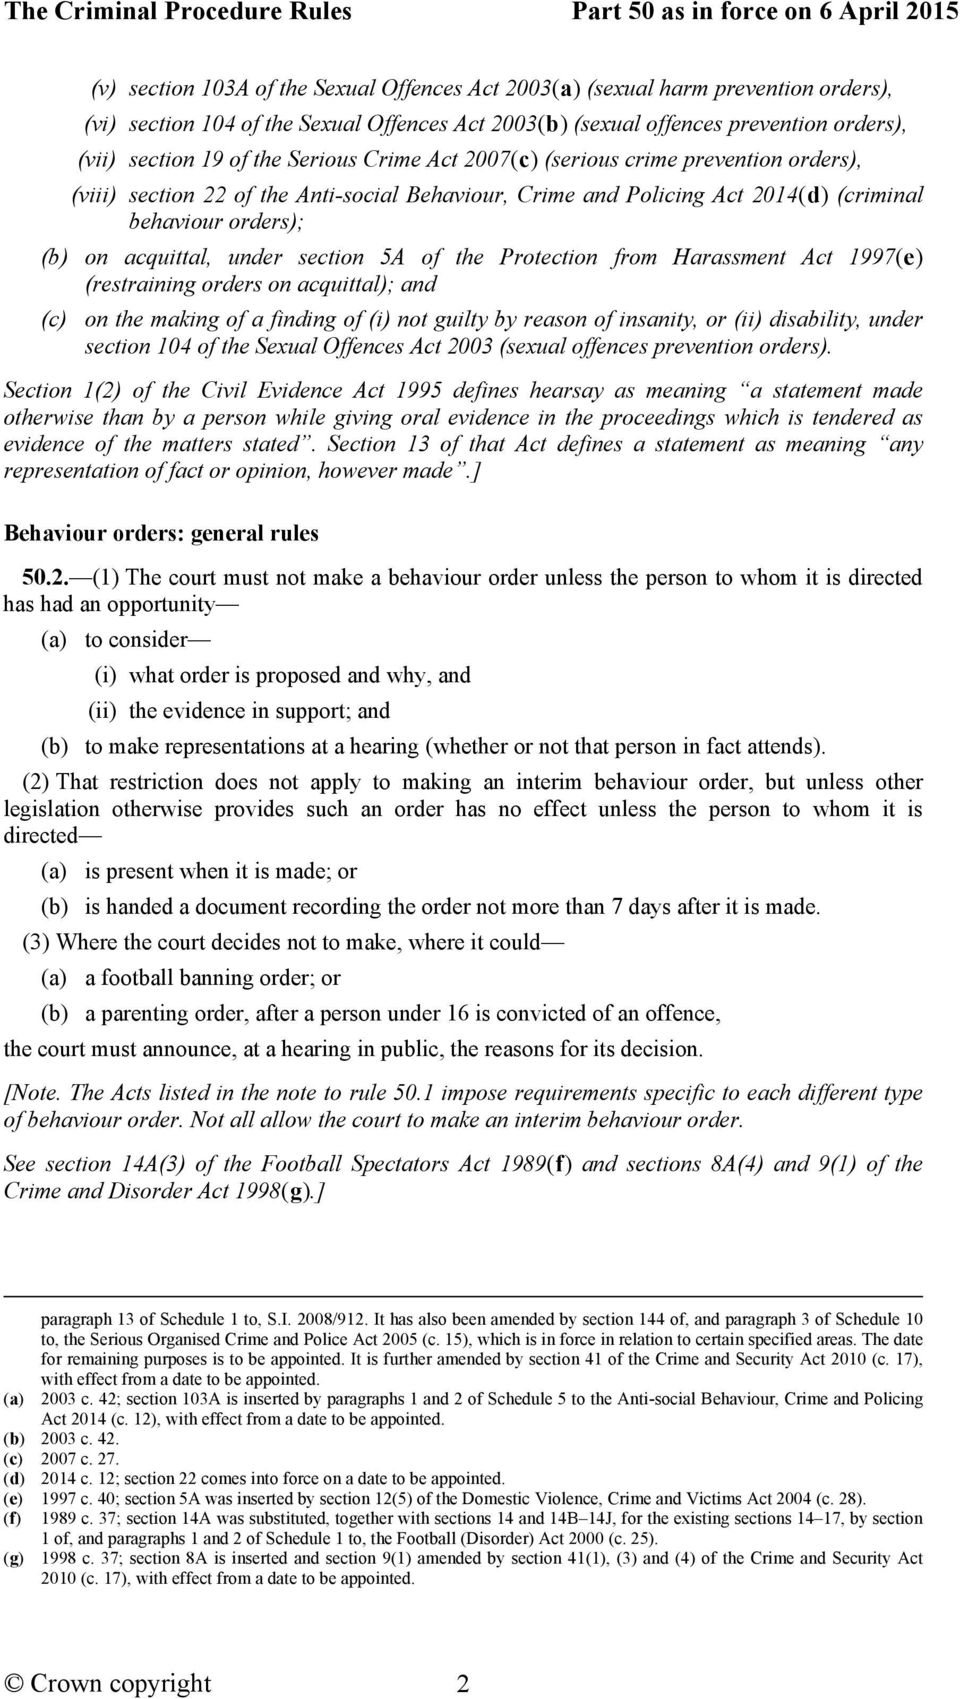 CIVIL EVIDENCE ACT 1995 PDF DOWNLOAD